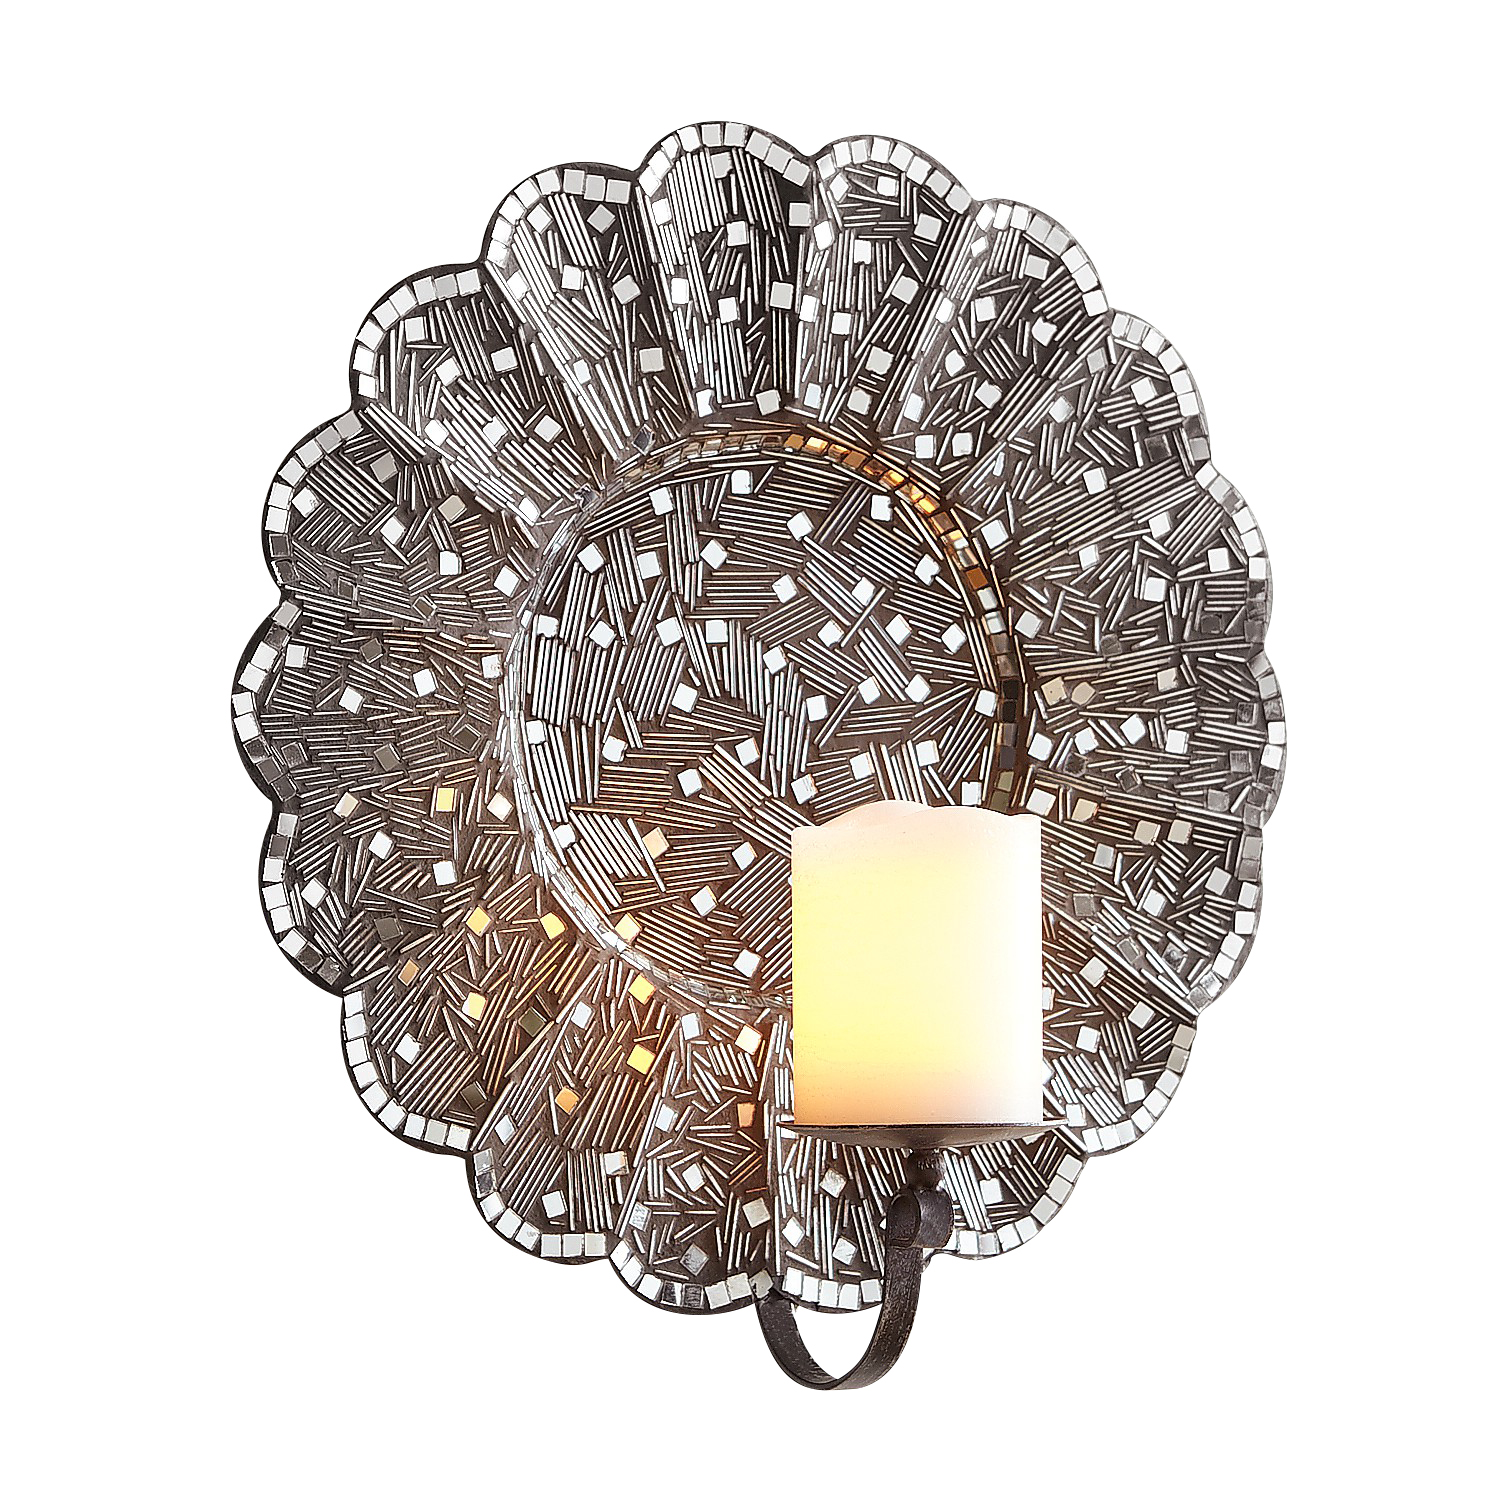 Silver Mosaic Flower Candle Wall Sconce - Pier1